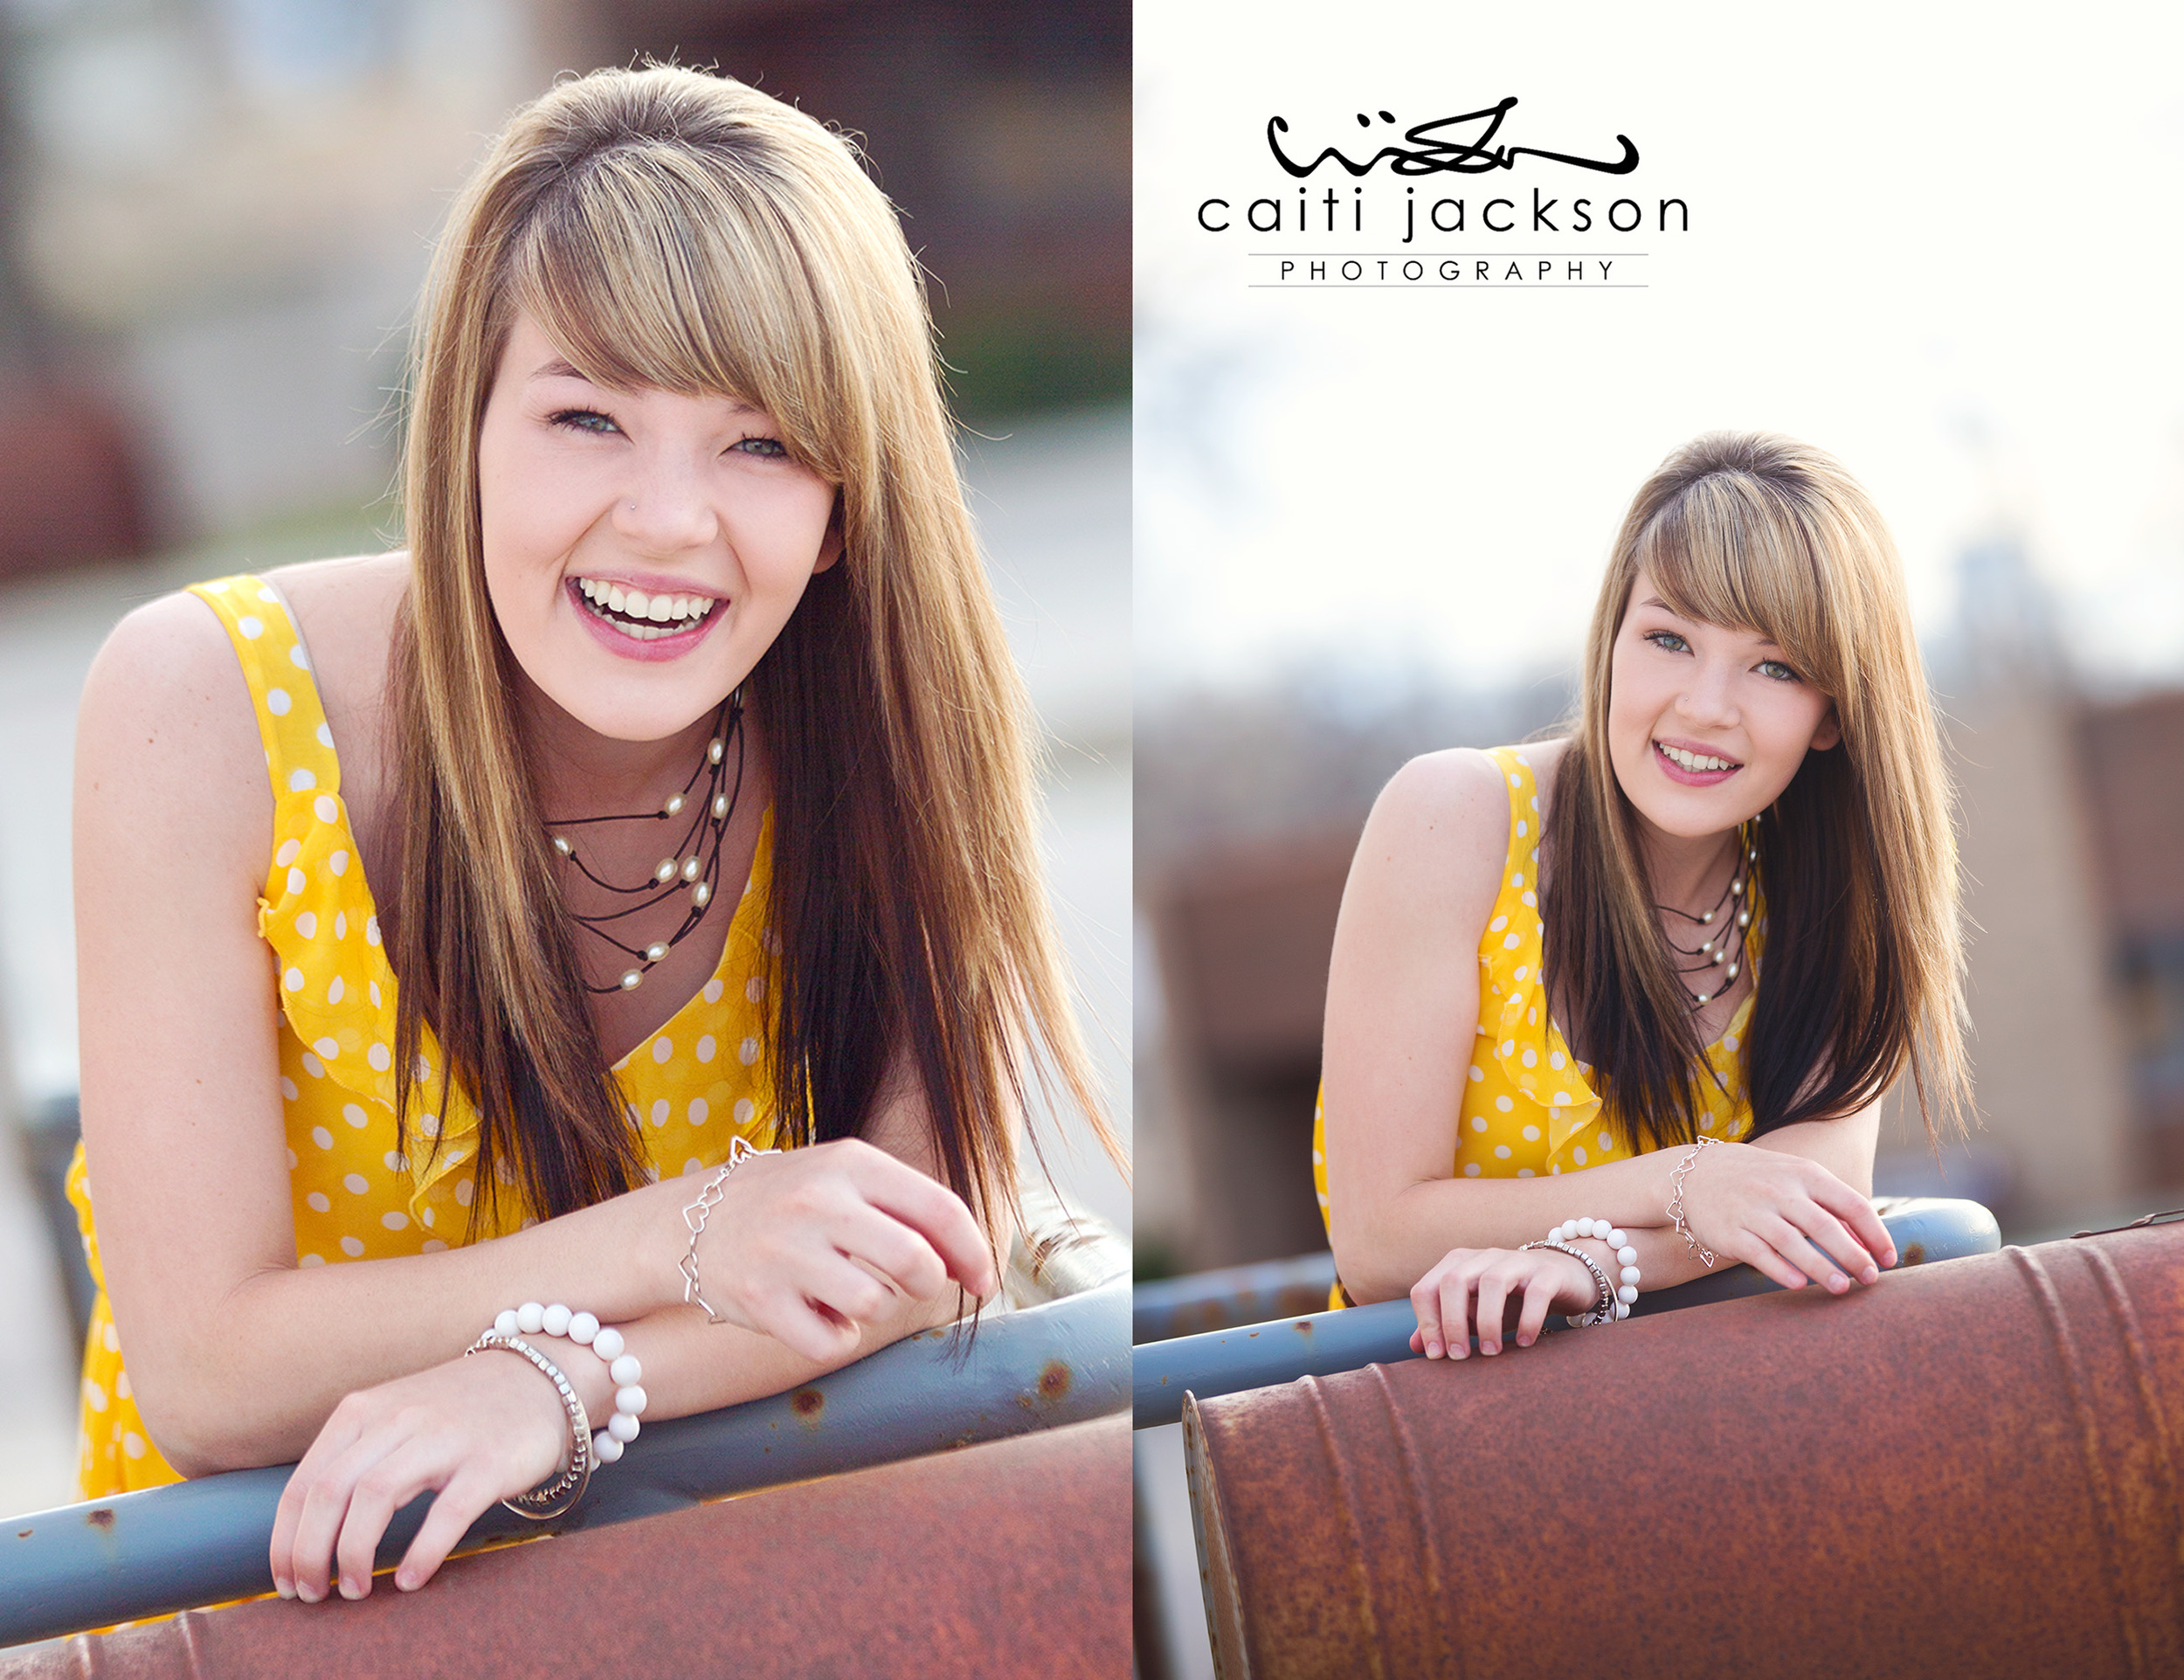 caiti jackson photography, portrait photography, senior photography, senior photo, senior photograph, senior girl photography, lifestyle photography, custom portrait photography, gillette wyoming photographer